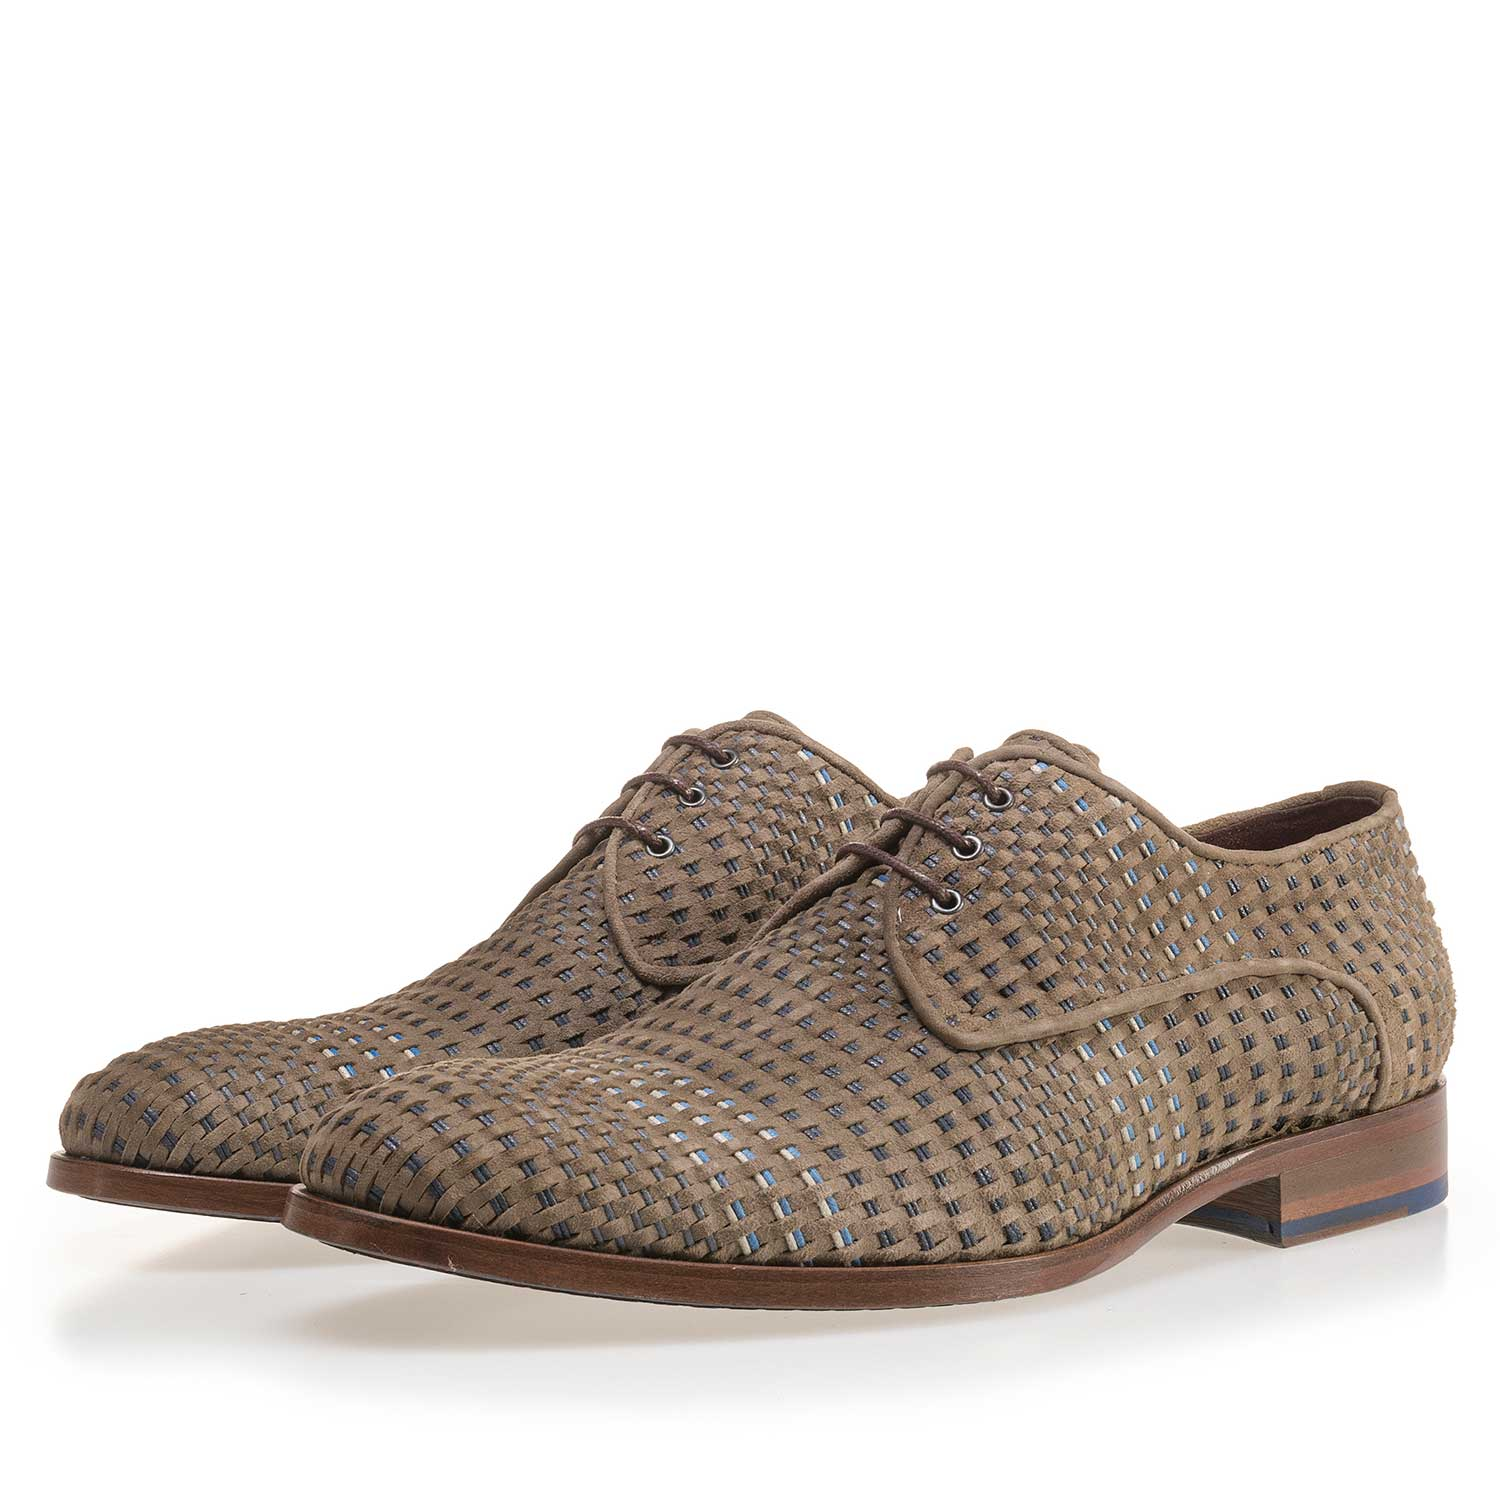 14210/01 - Taupe-coloured lace shoe made of braided leather